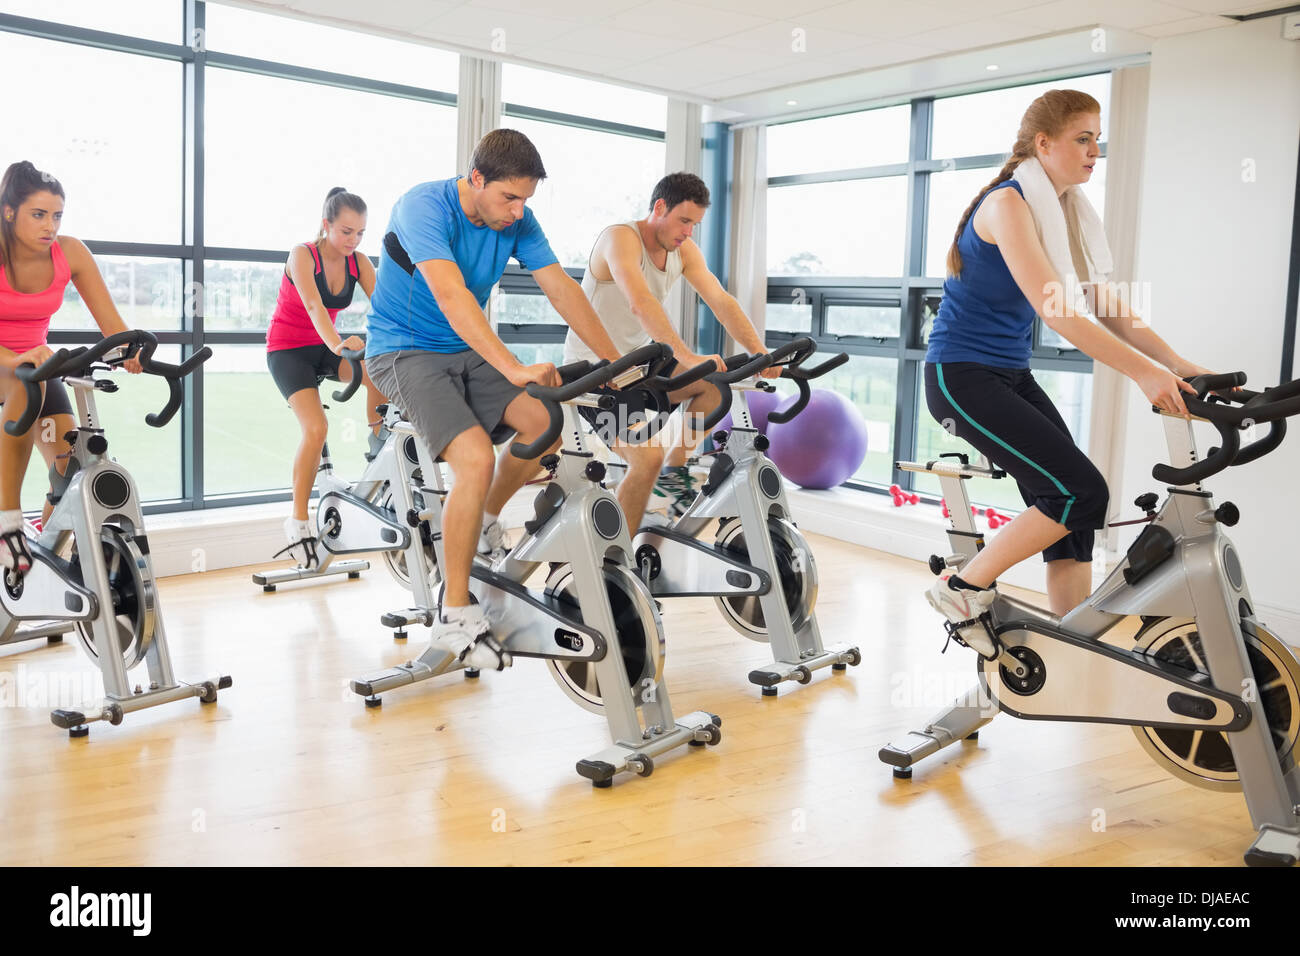 Determined people working out at spinning class Stock Photo